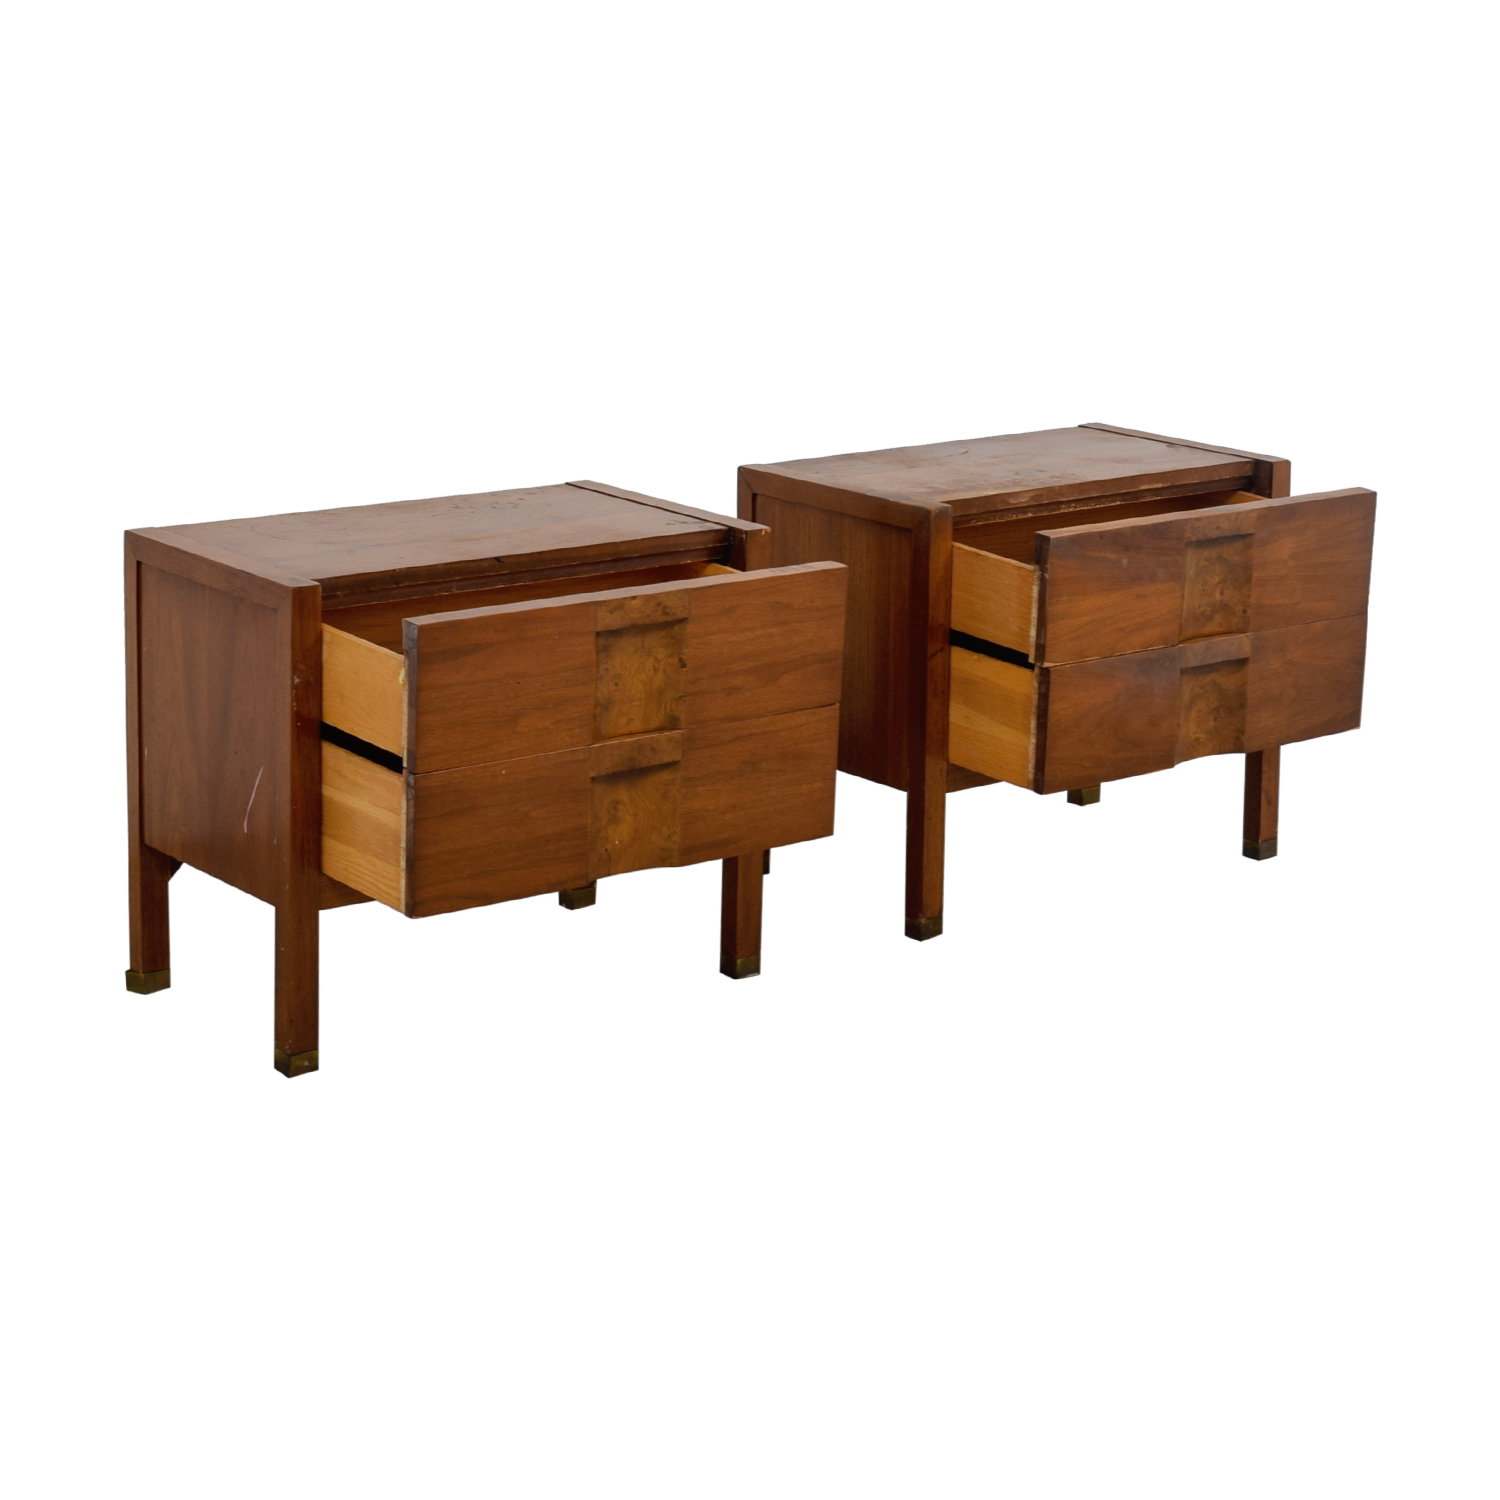 Two-Drawer Wood Nightables / Tables